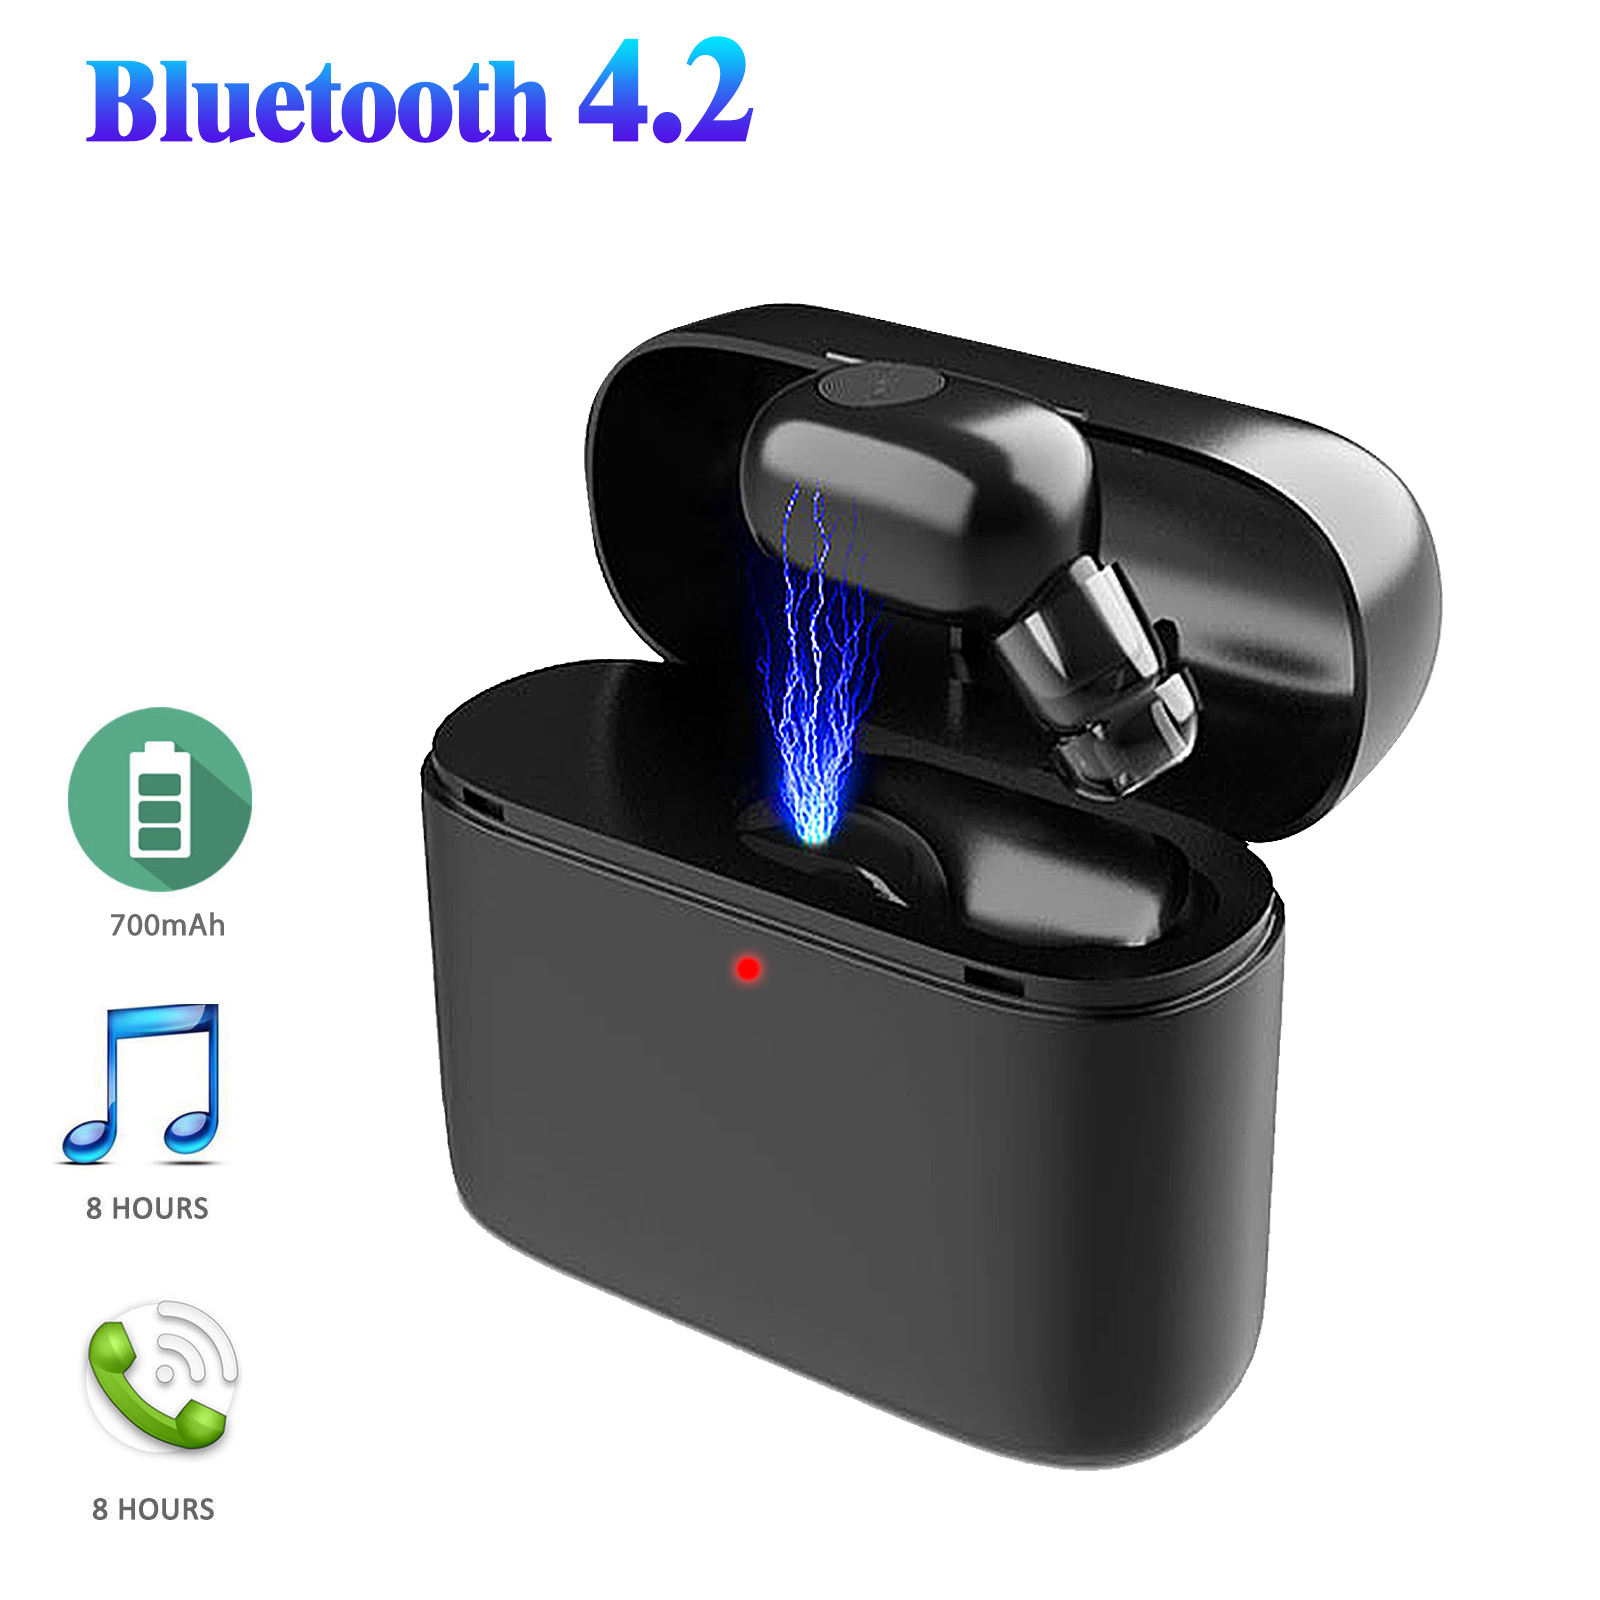 Wireless Bluetooth Earbud, EEEKit Truly Wireless Bluetooth 4.2 Single Earphone In-Ear Stereo Headset Built-in HD Microphone with Charging Case